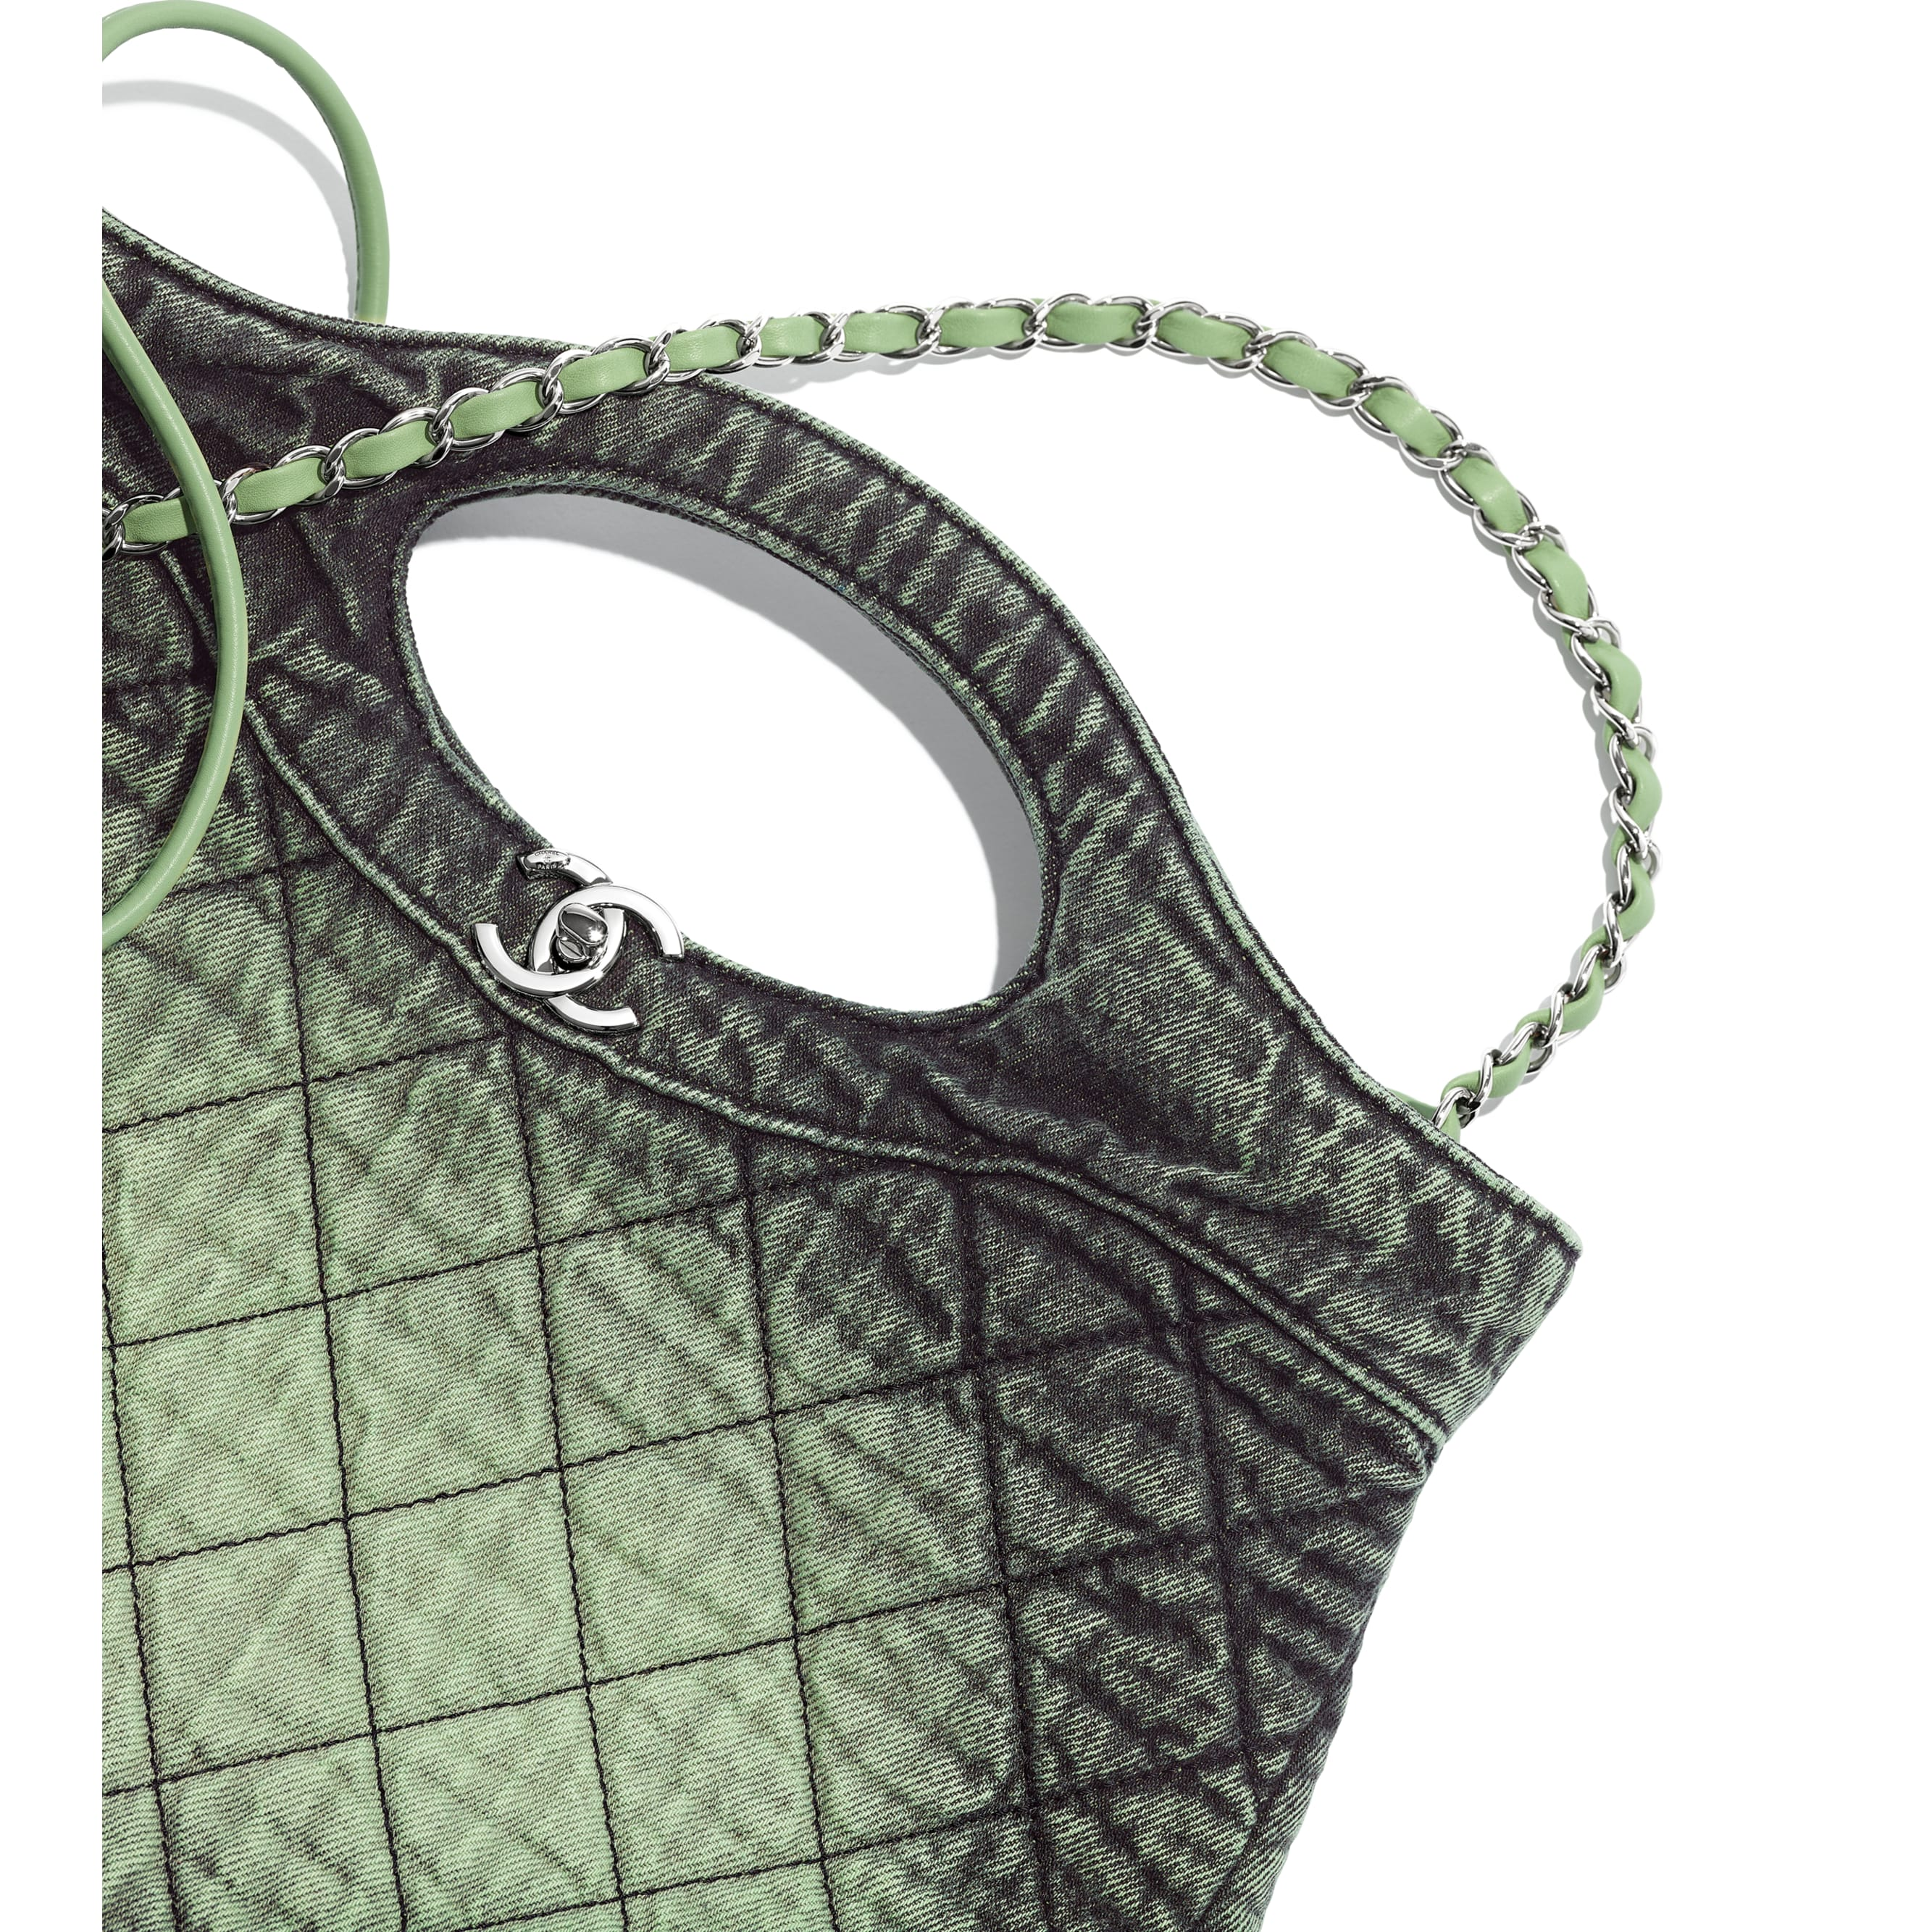 CHANEL 31 Shopping Bag - Green & Black - Denim & Silver-Tone Metal - Extra view - see standard sized version